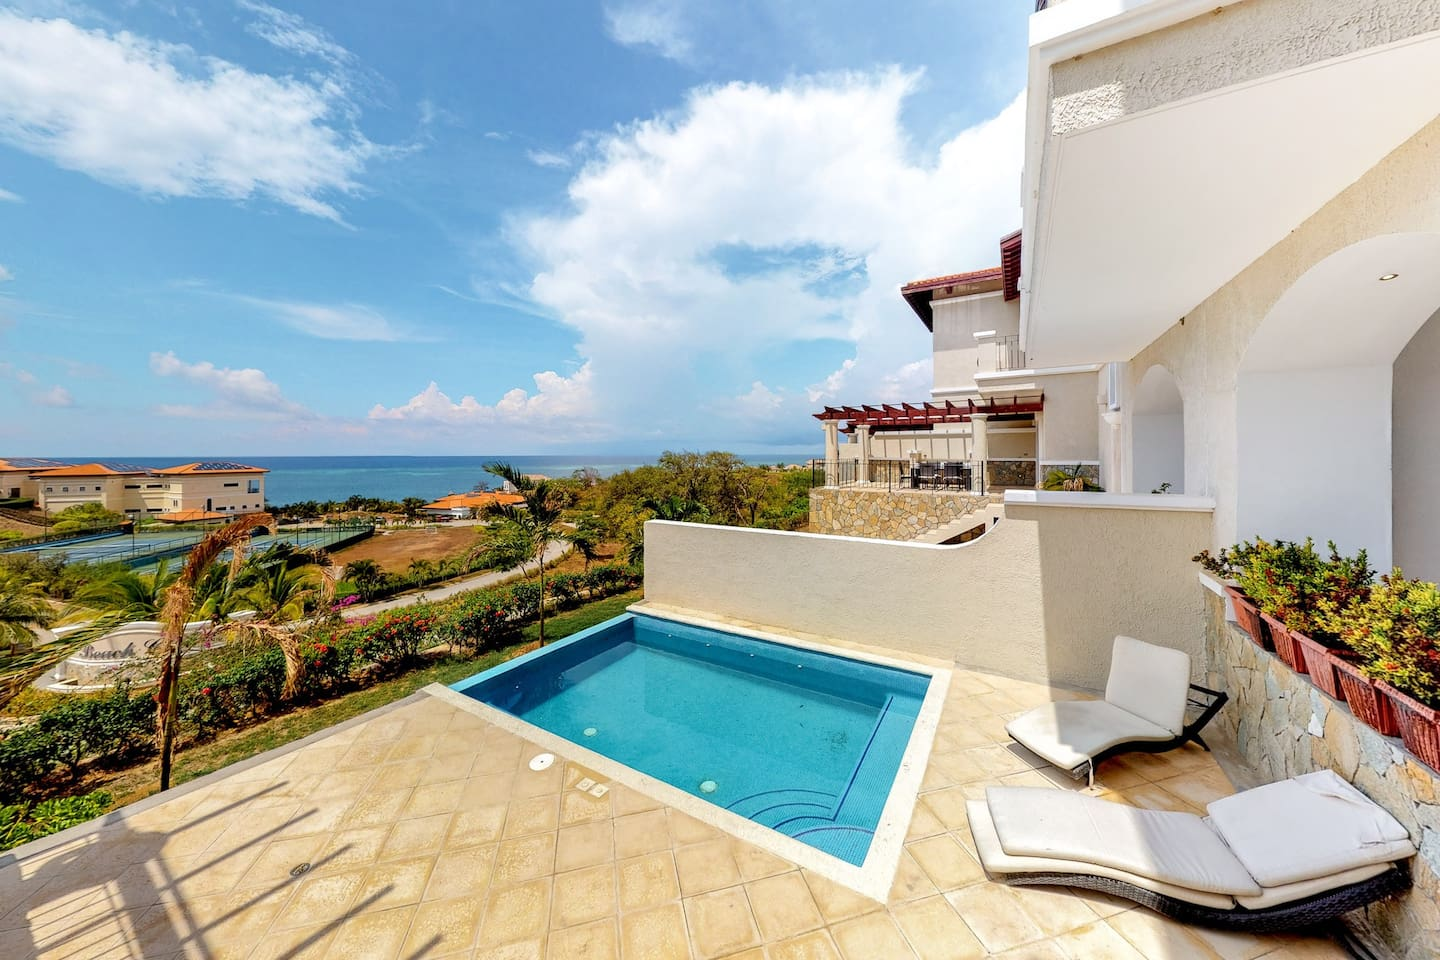 Family-friendly villa with great views, terrace, plunge pool, and grill